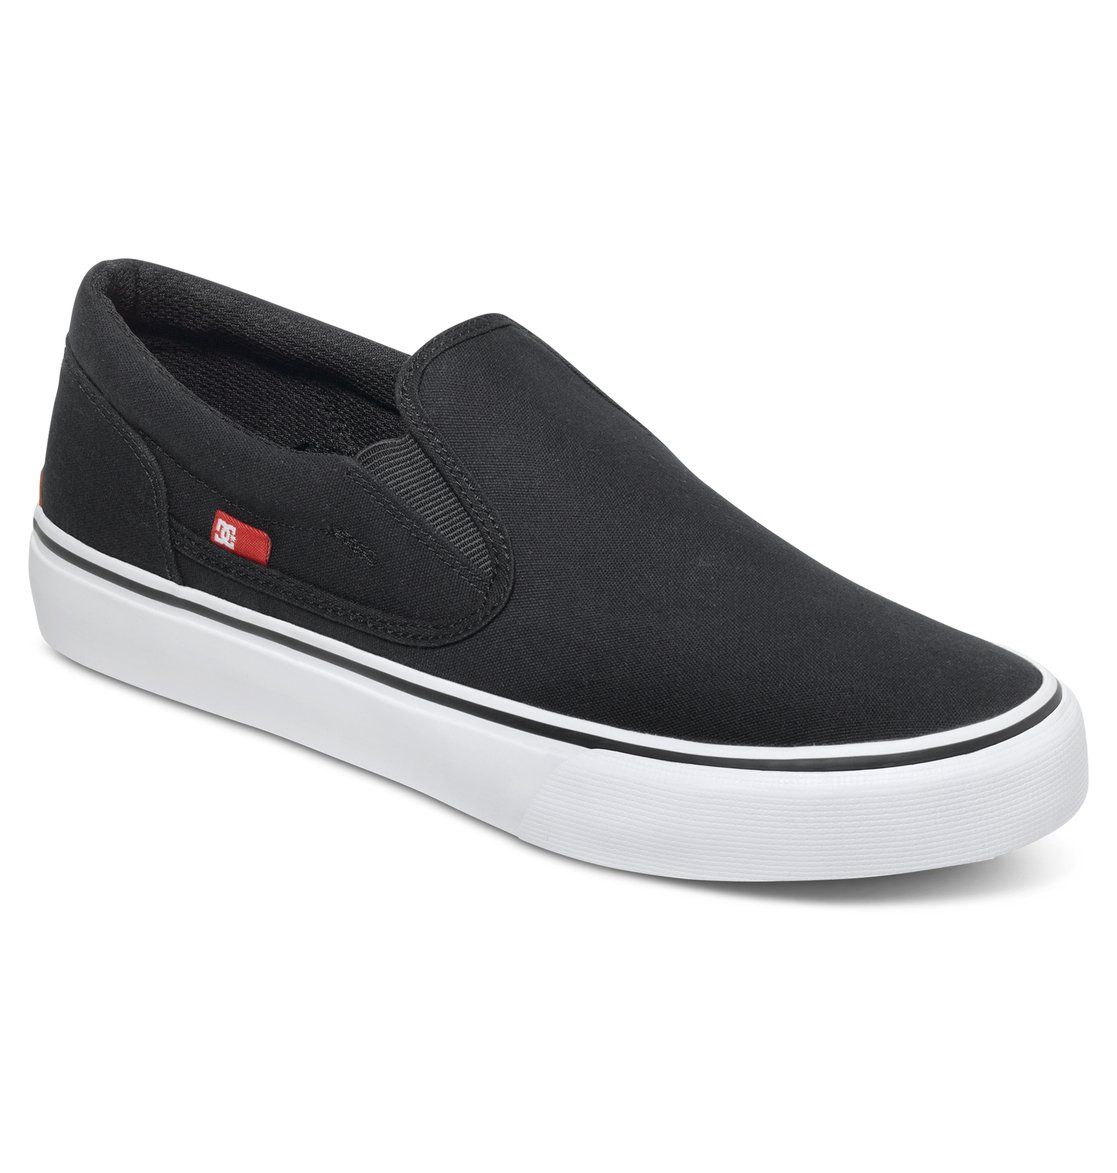 trase chaussures slip on 3613370645145 dc shoes. Black Bedroom Furniture Sets. Home Design Ideas